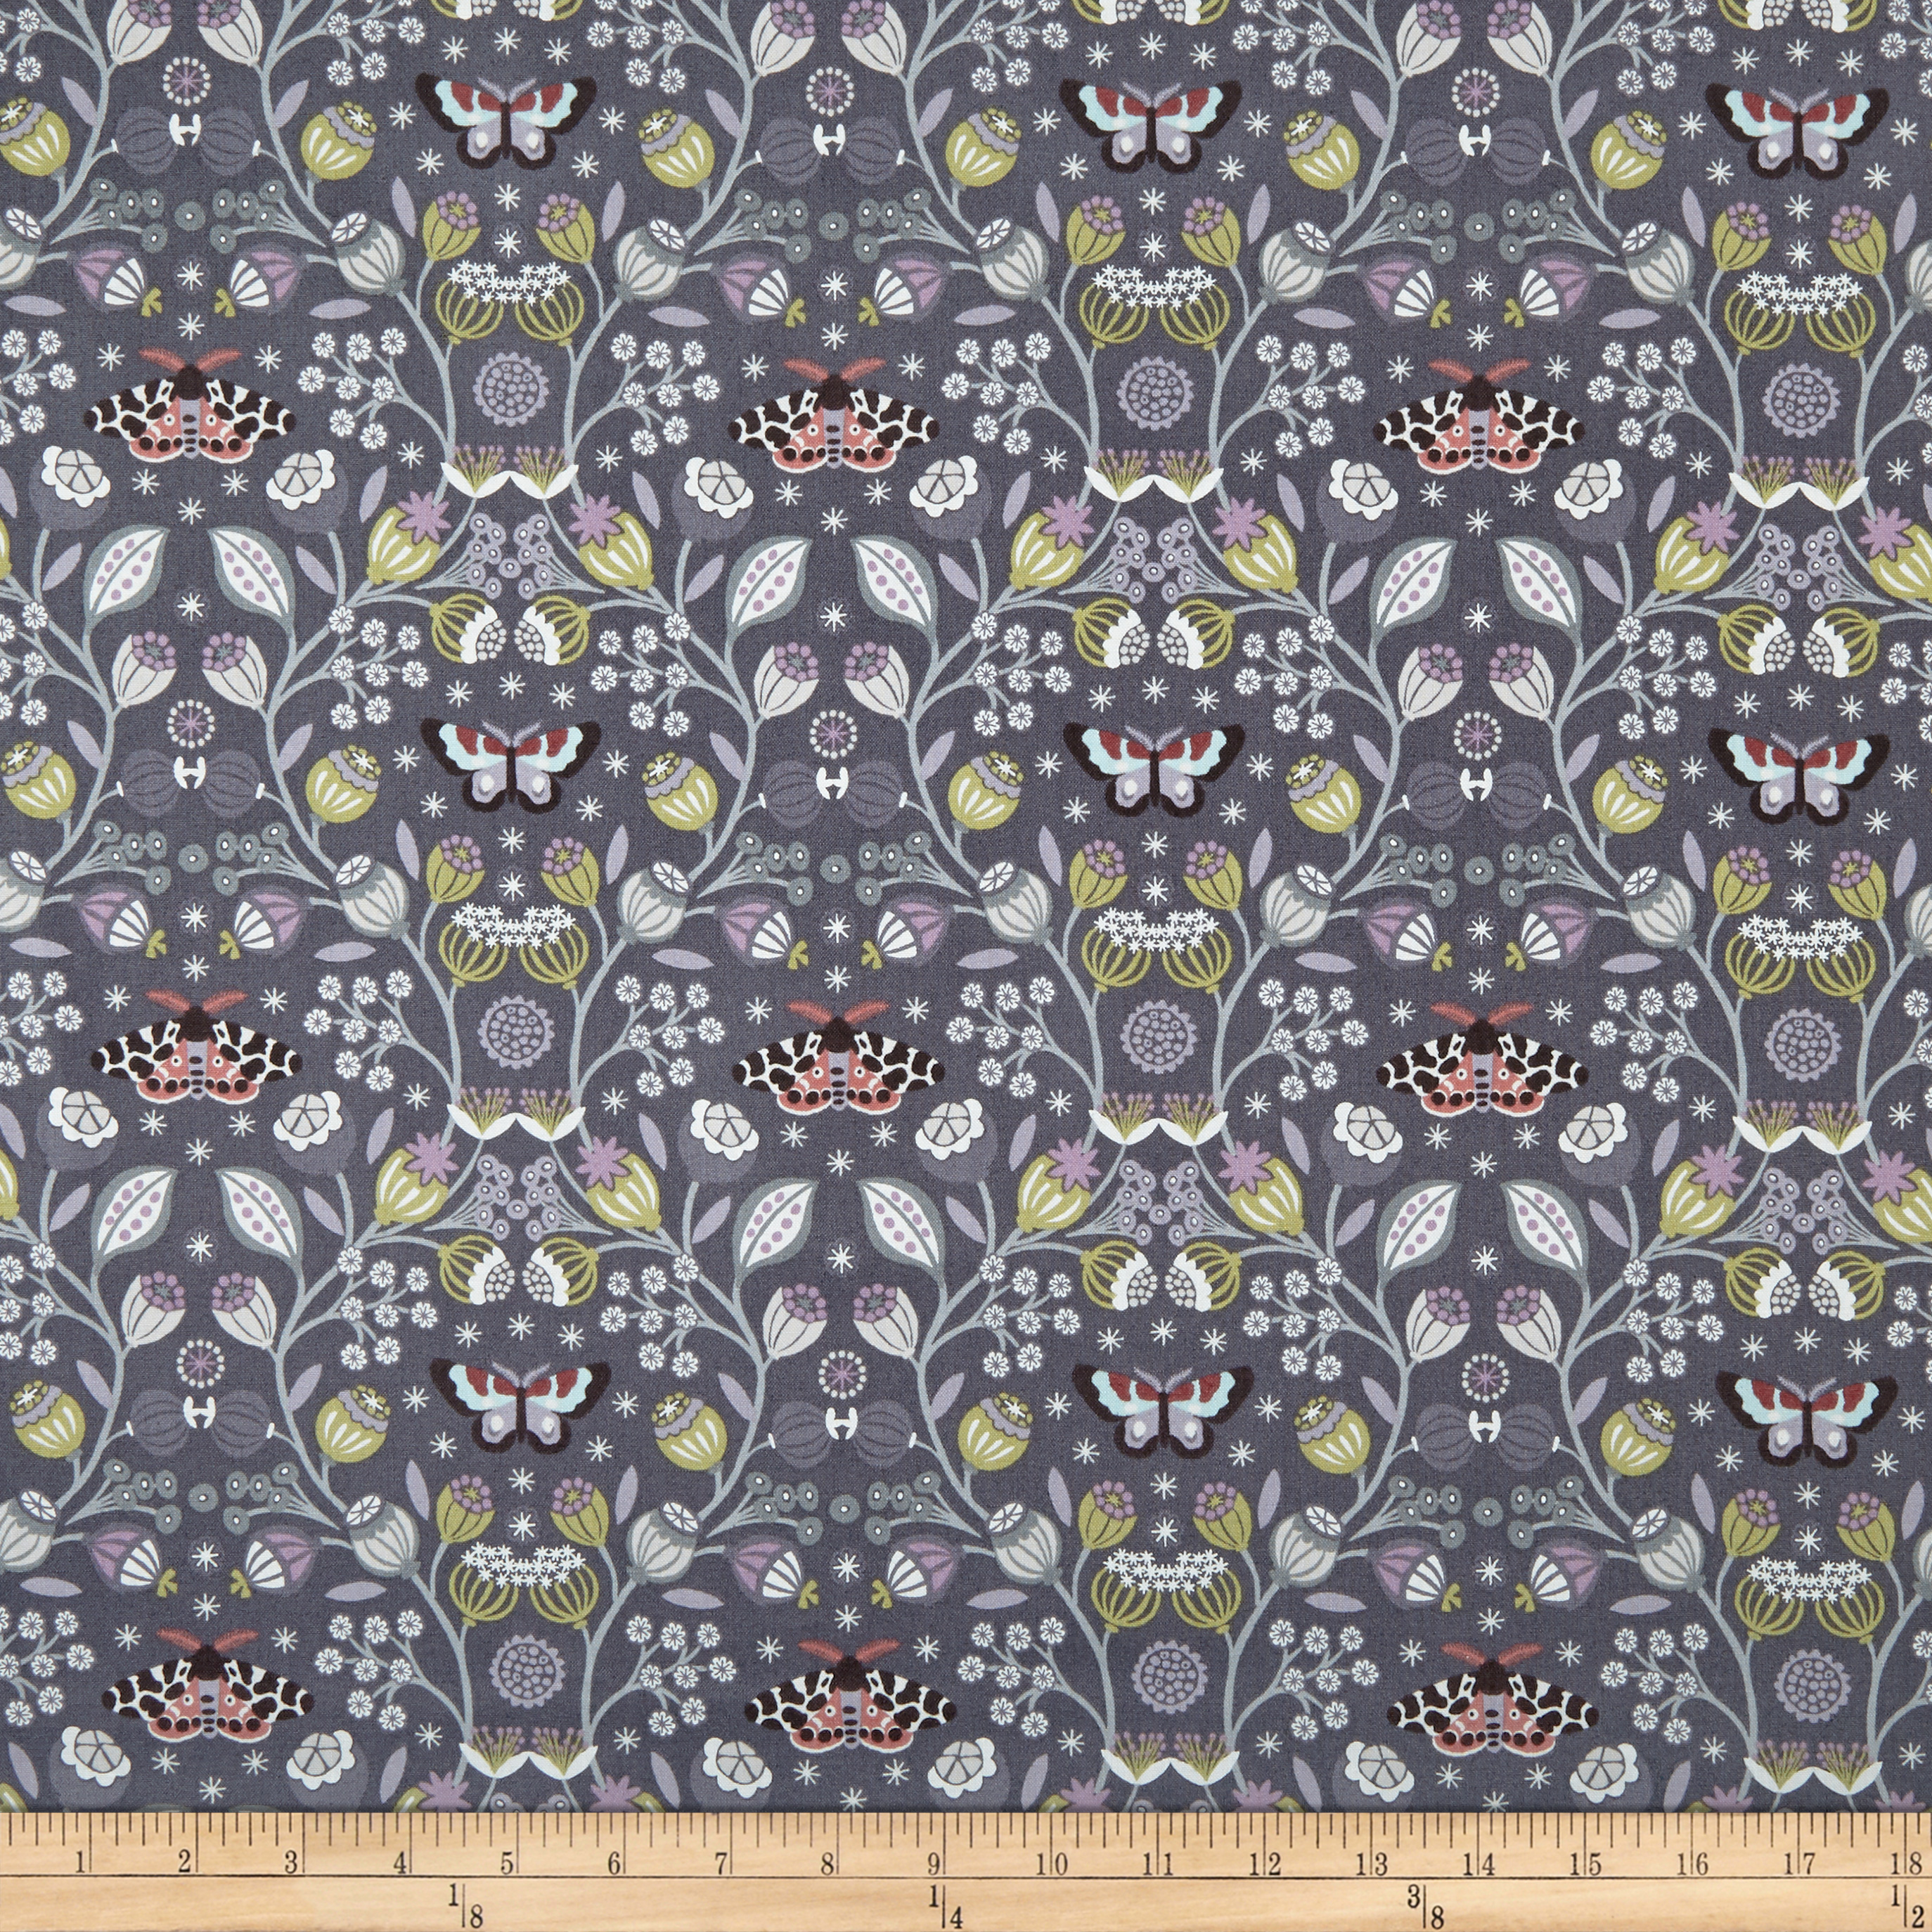 INOpets.com Anything for Pets Parents & Their Pets Lewis & Irene Winter Garden Winter Garden Dark Fabric